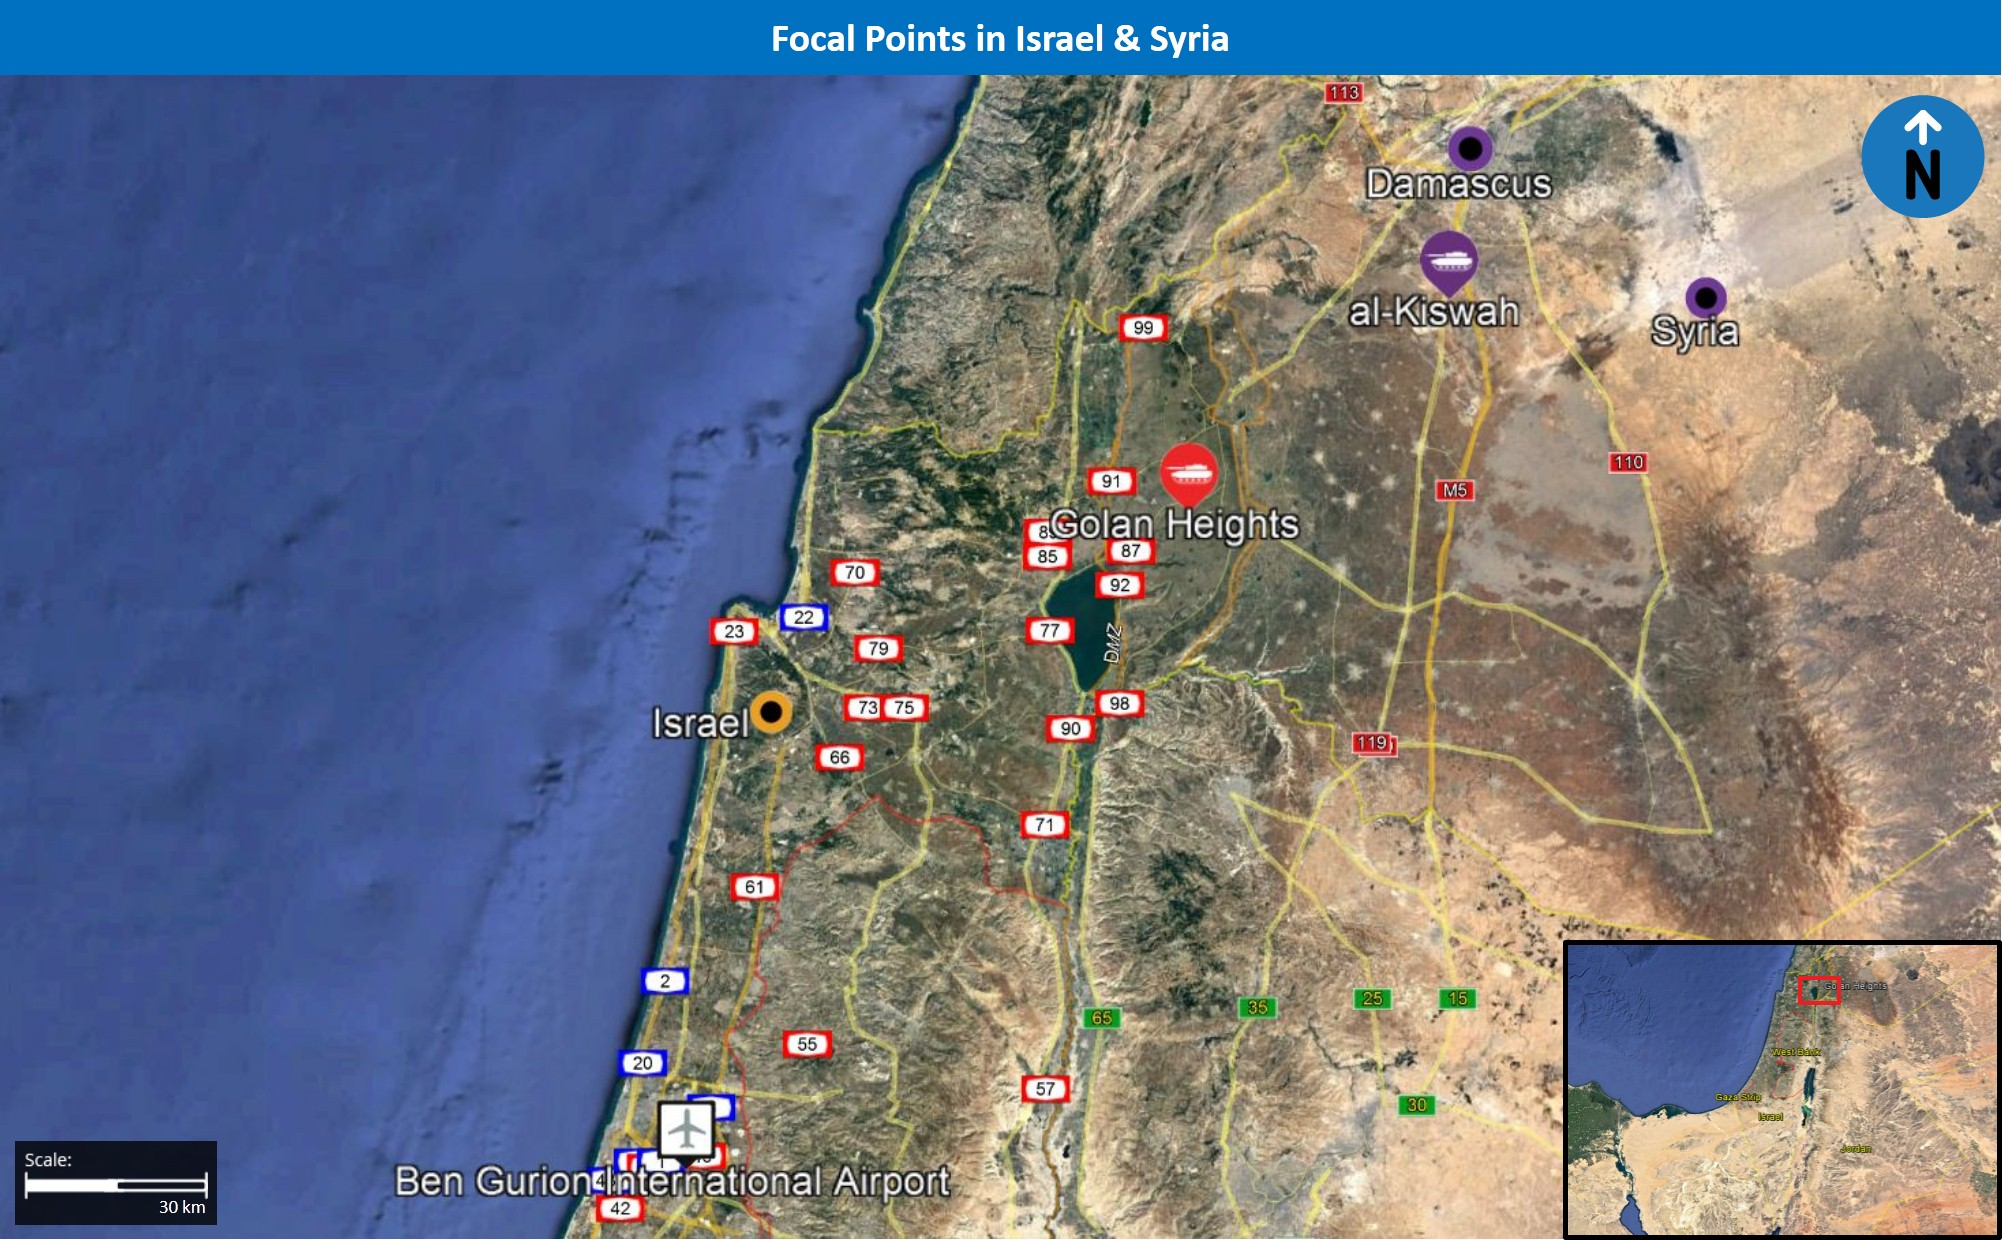 Israeli Air Force targets Syrian air defense system, Iranian bases in Syria during morning hours of February 10 - Israel & Syria Alert | MAX Security